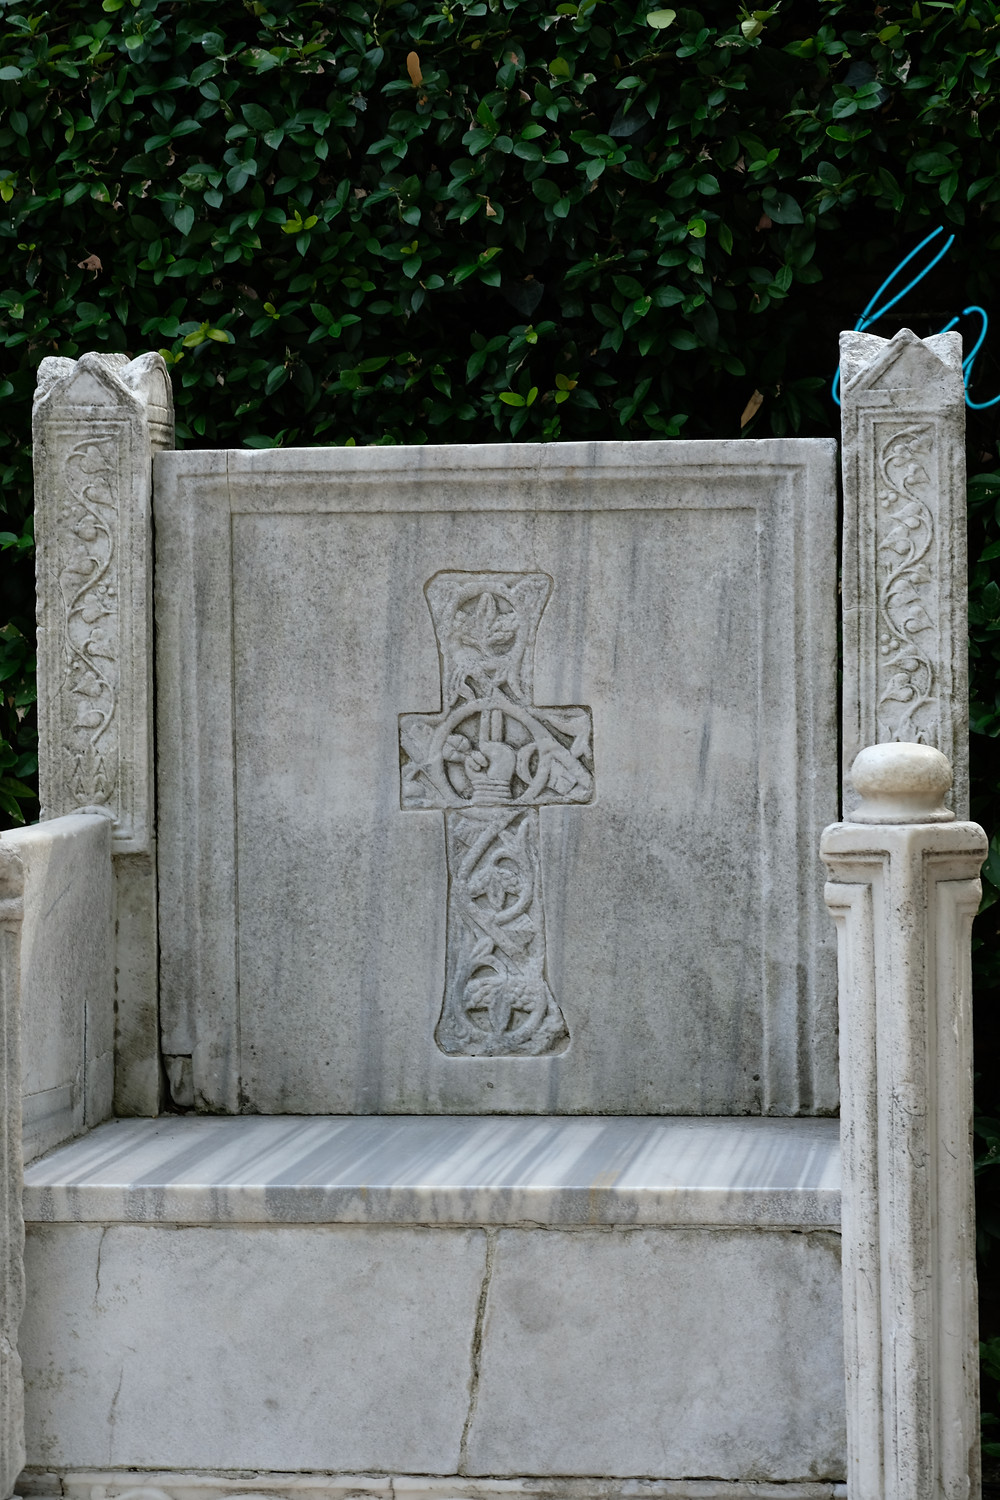 large Byzantine throne made of marble and ornately carved